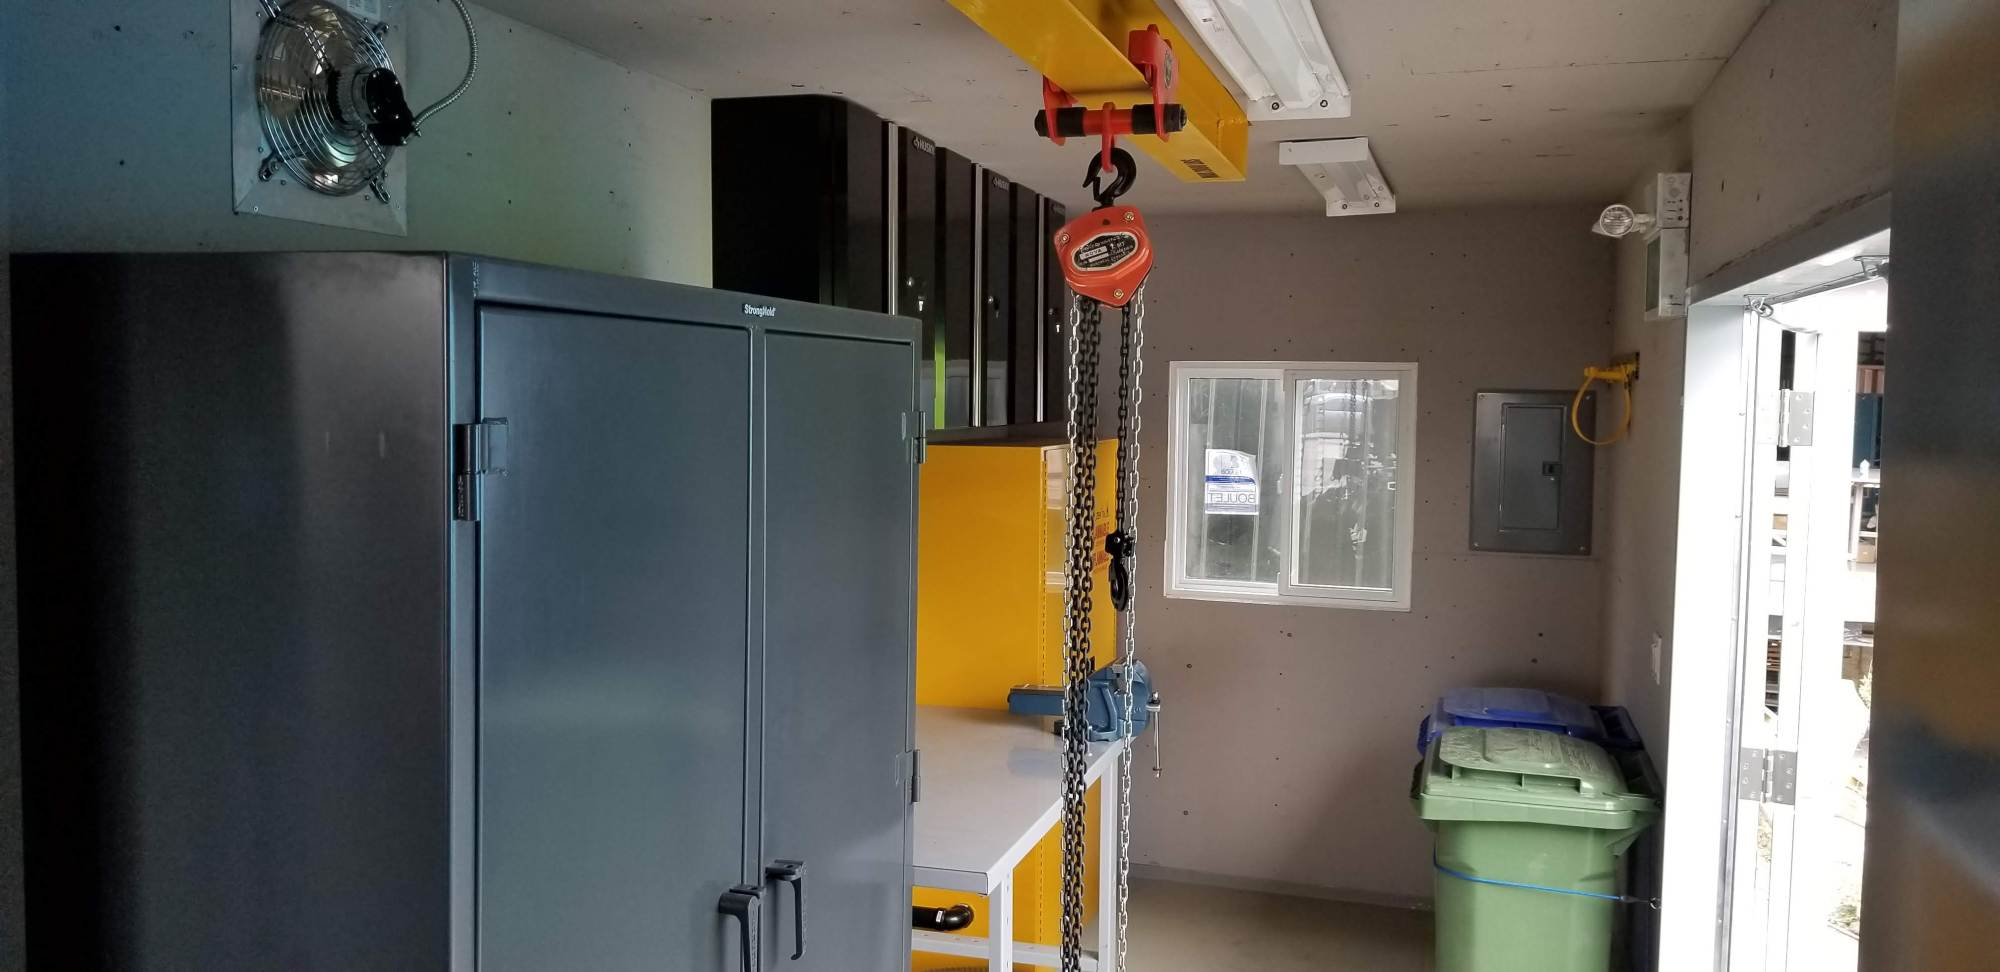 hight resolution of we have fabricated delivered everything from modular banks to mechanical rooms to basic storage if you have a project you would like to find a modular